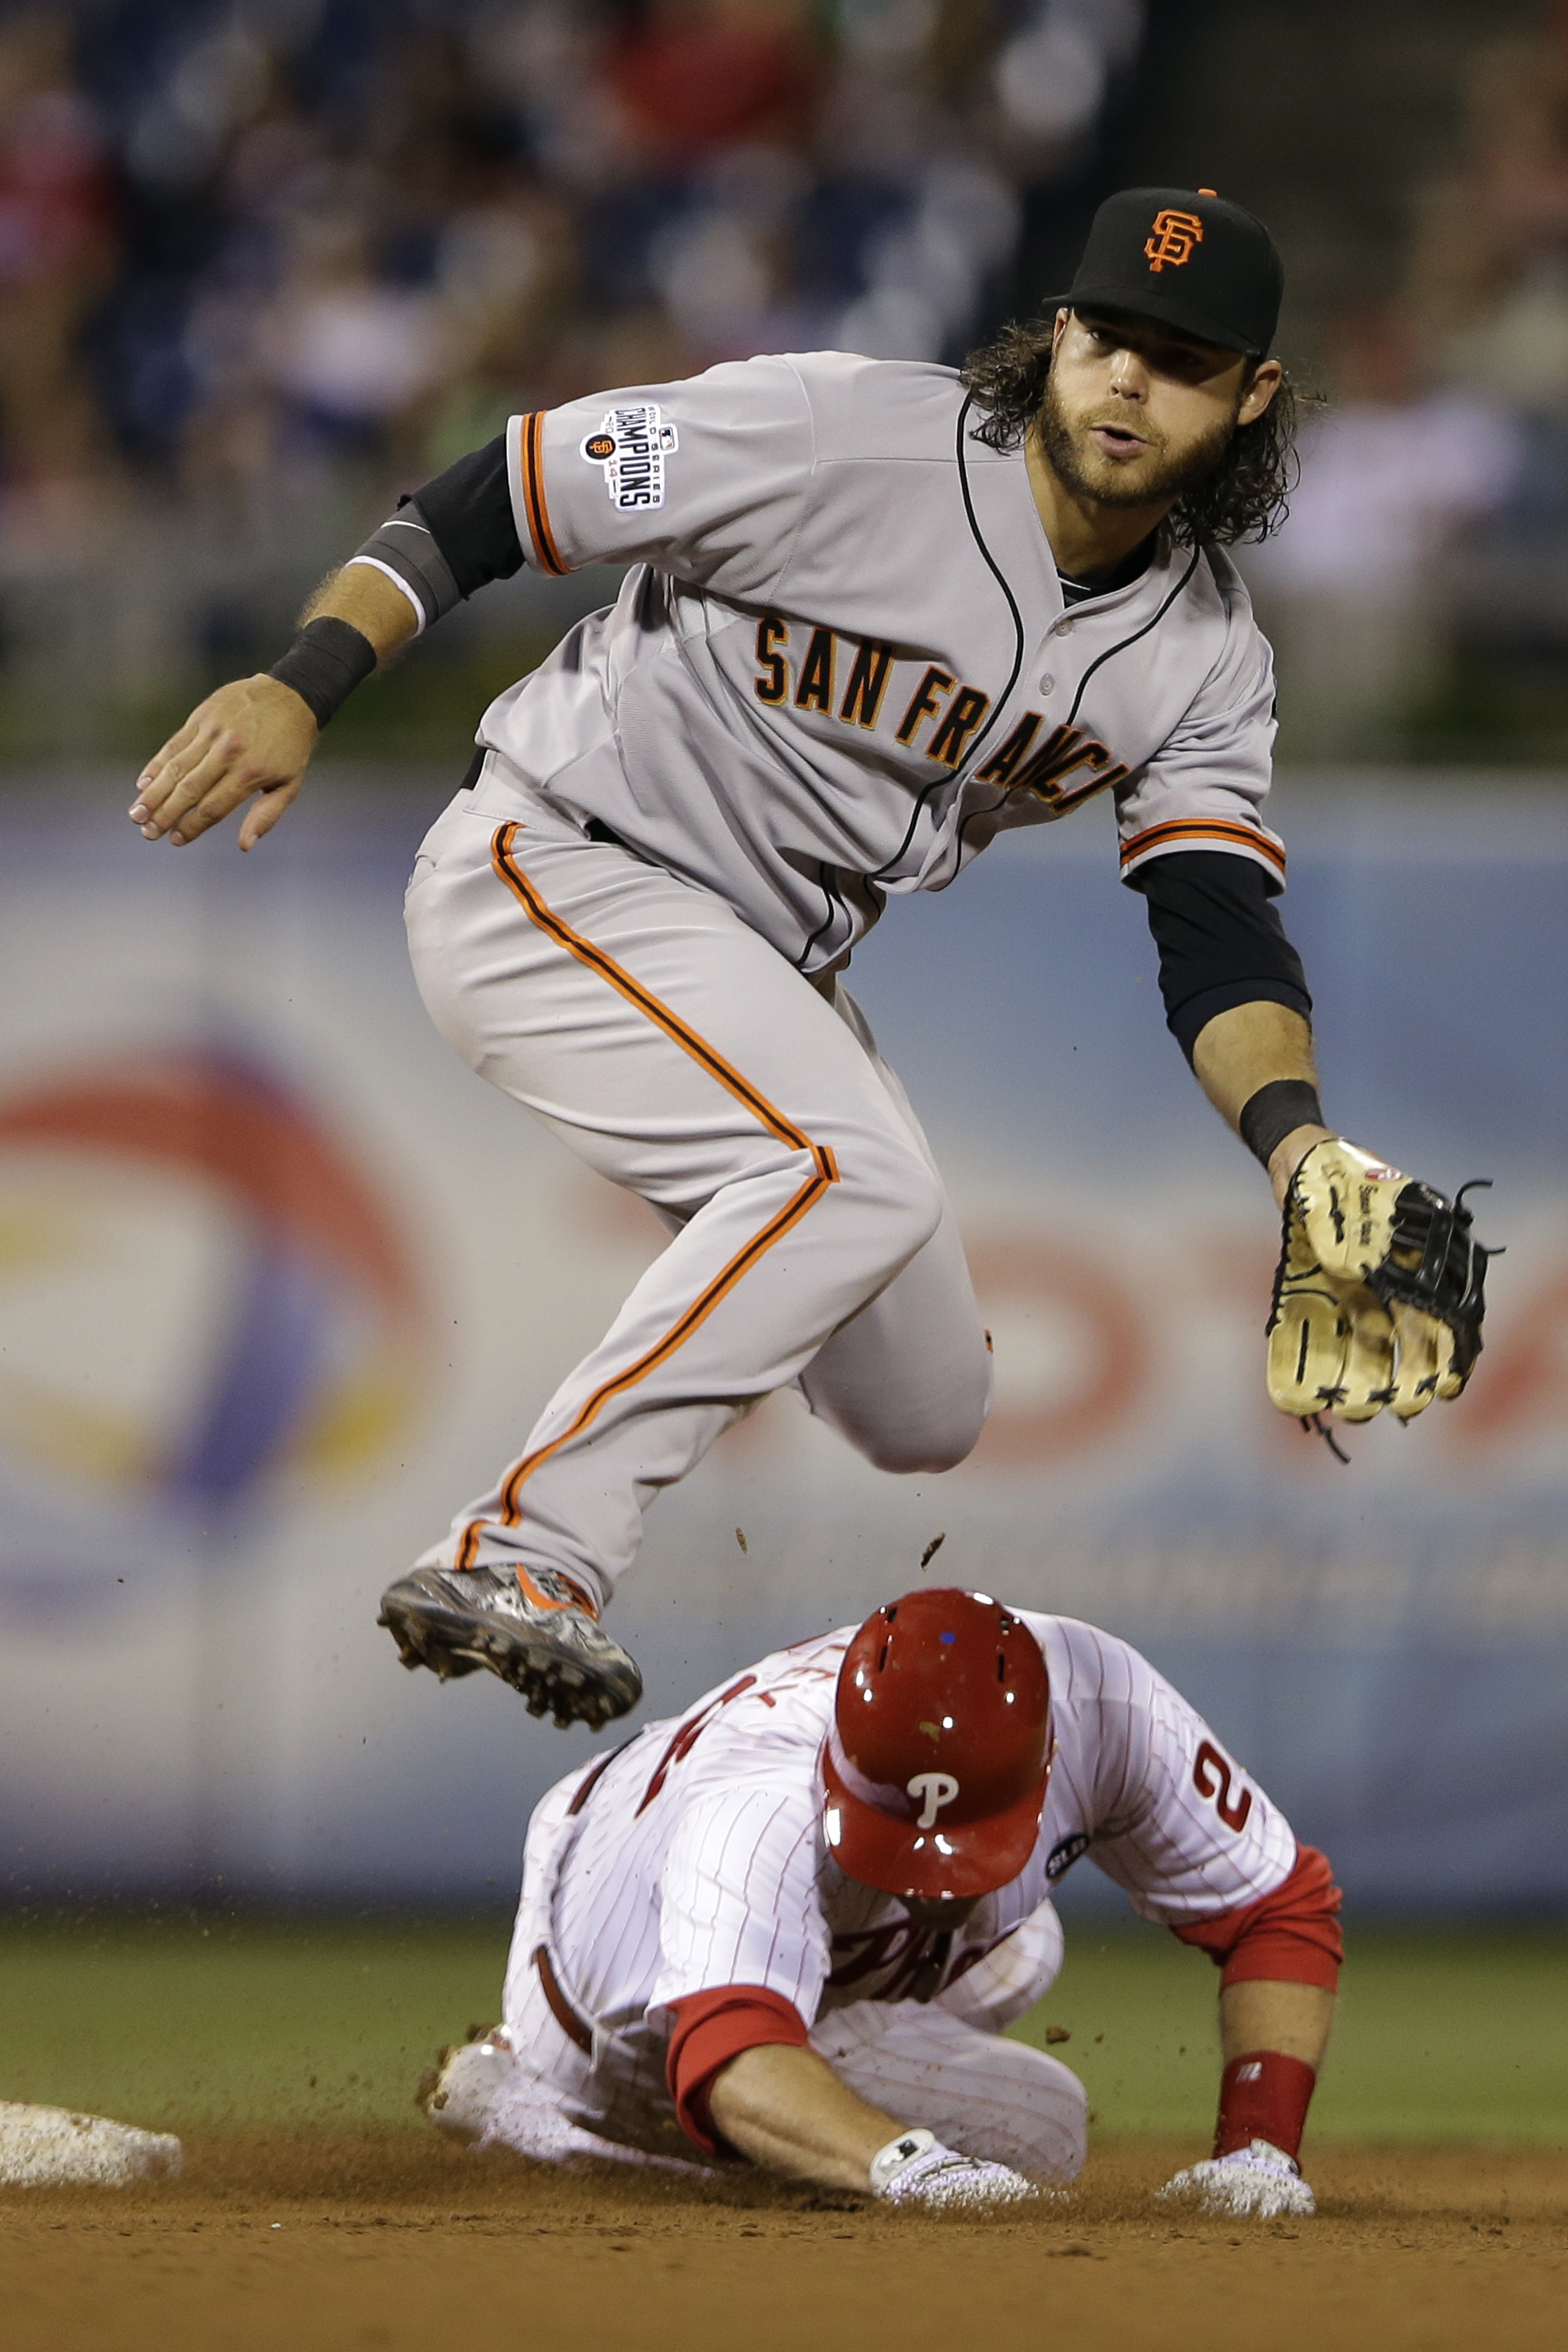 San Francisco Giants shortstop Brandon Crawford, top, leaps over Philadelphia Phillies' Chase Utley after forcing Utley out at second base on a double play hit into by Ryan Howard during the eighth inning of a baseball game, Friday, June 5, 2015, in Phila